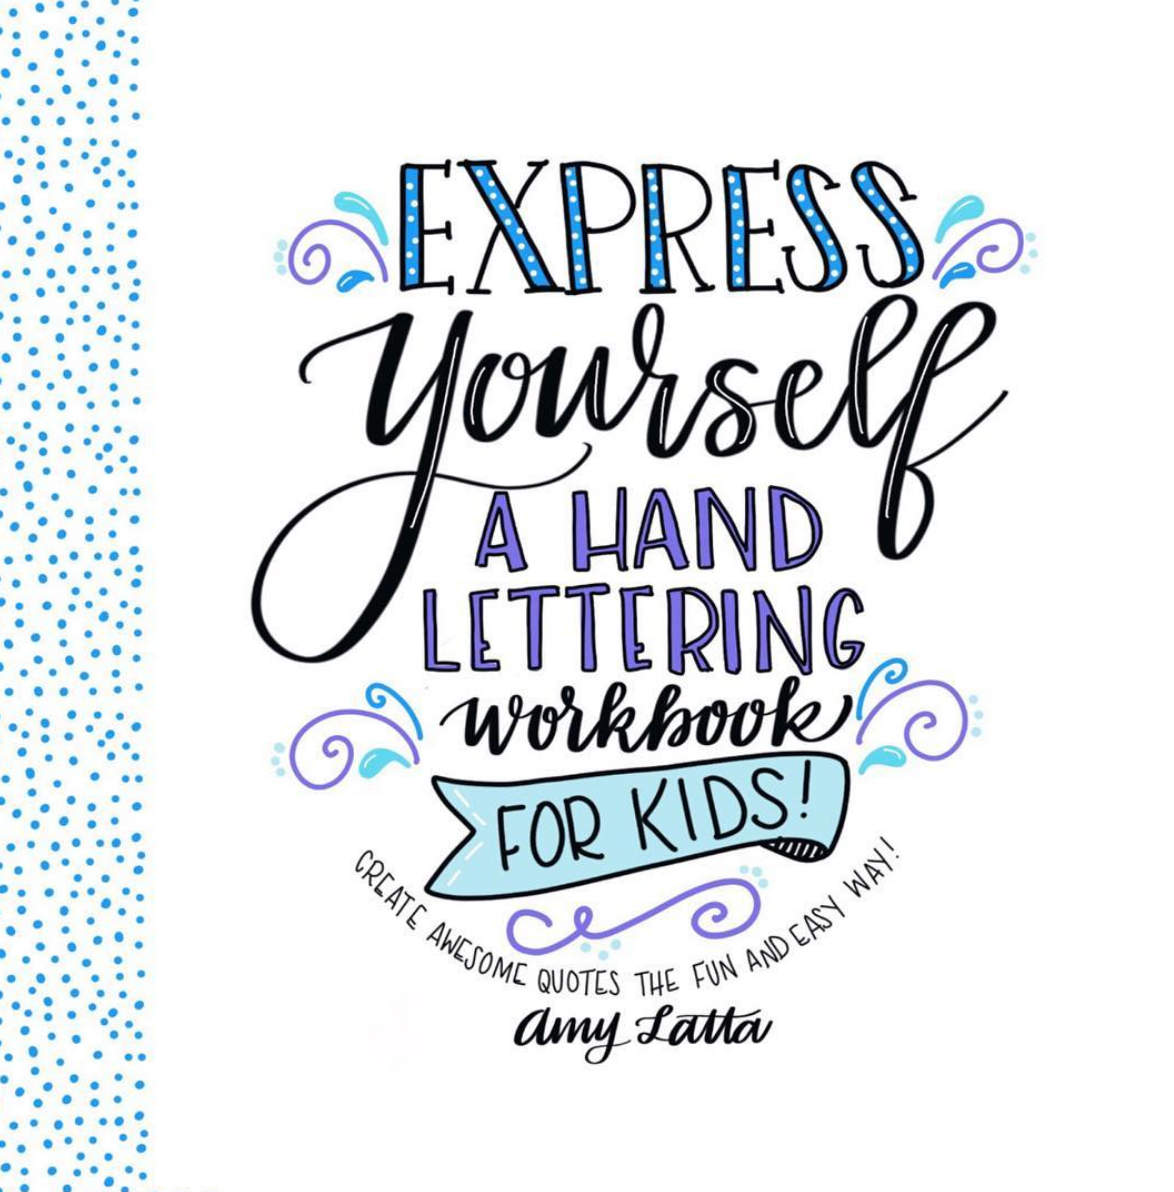 Express Yourself: A Hand Lettering Workbook for Kids - Amy Latta ...